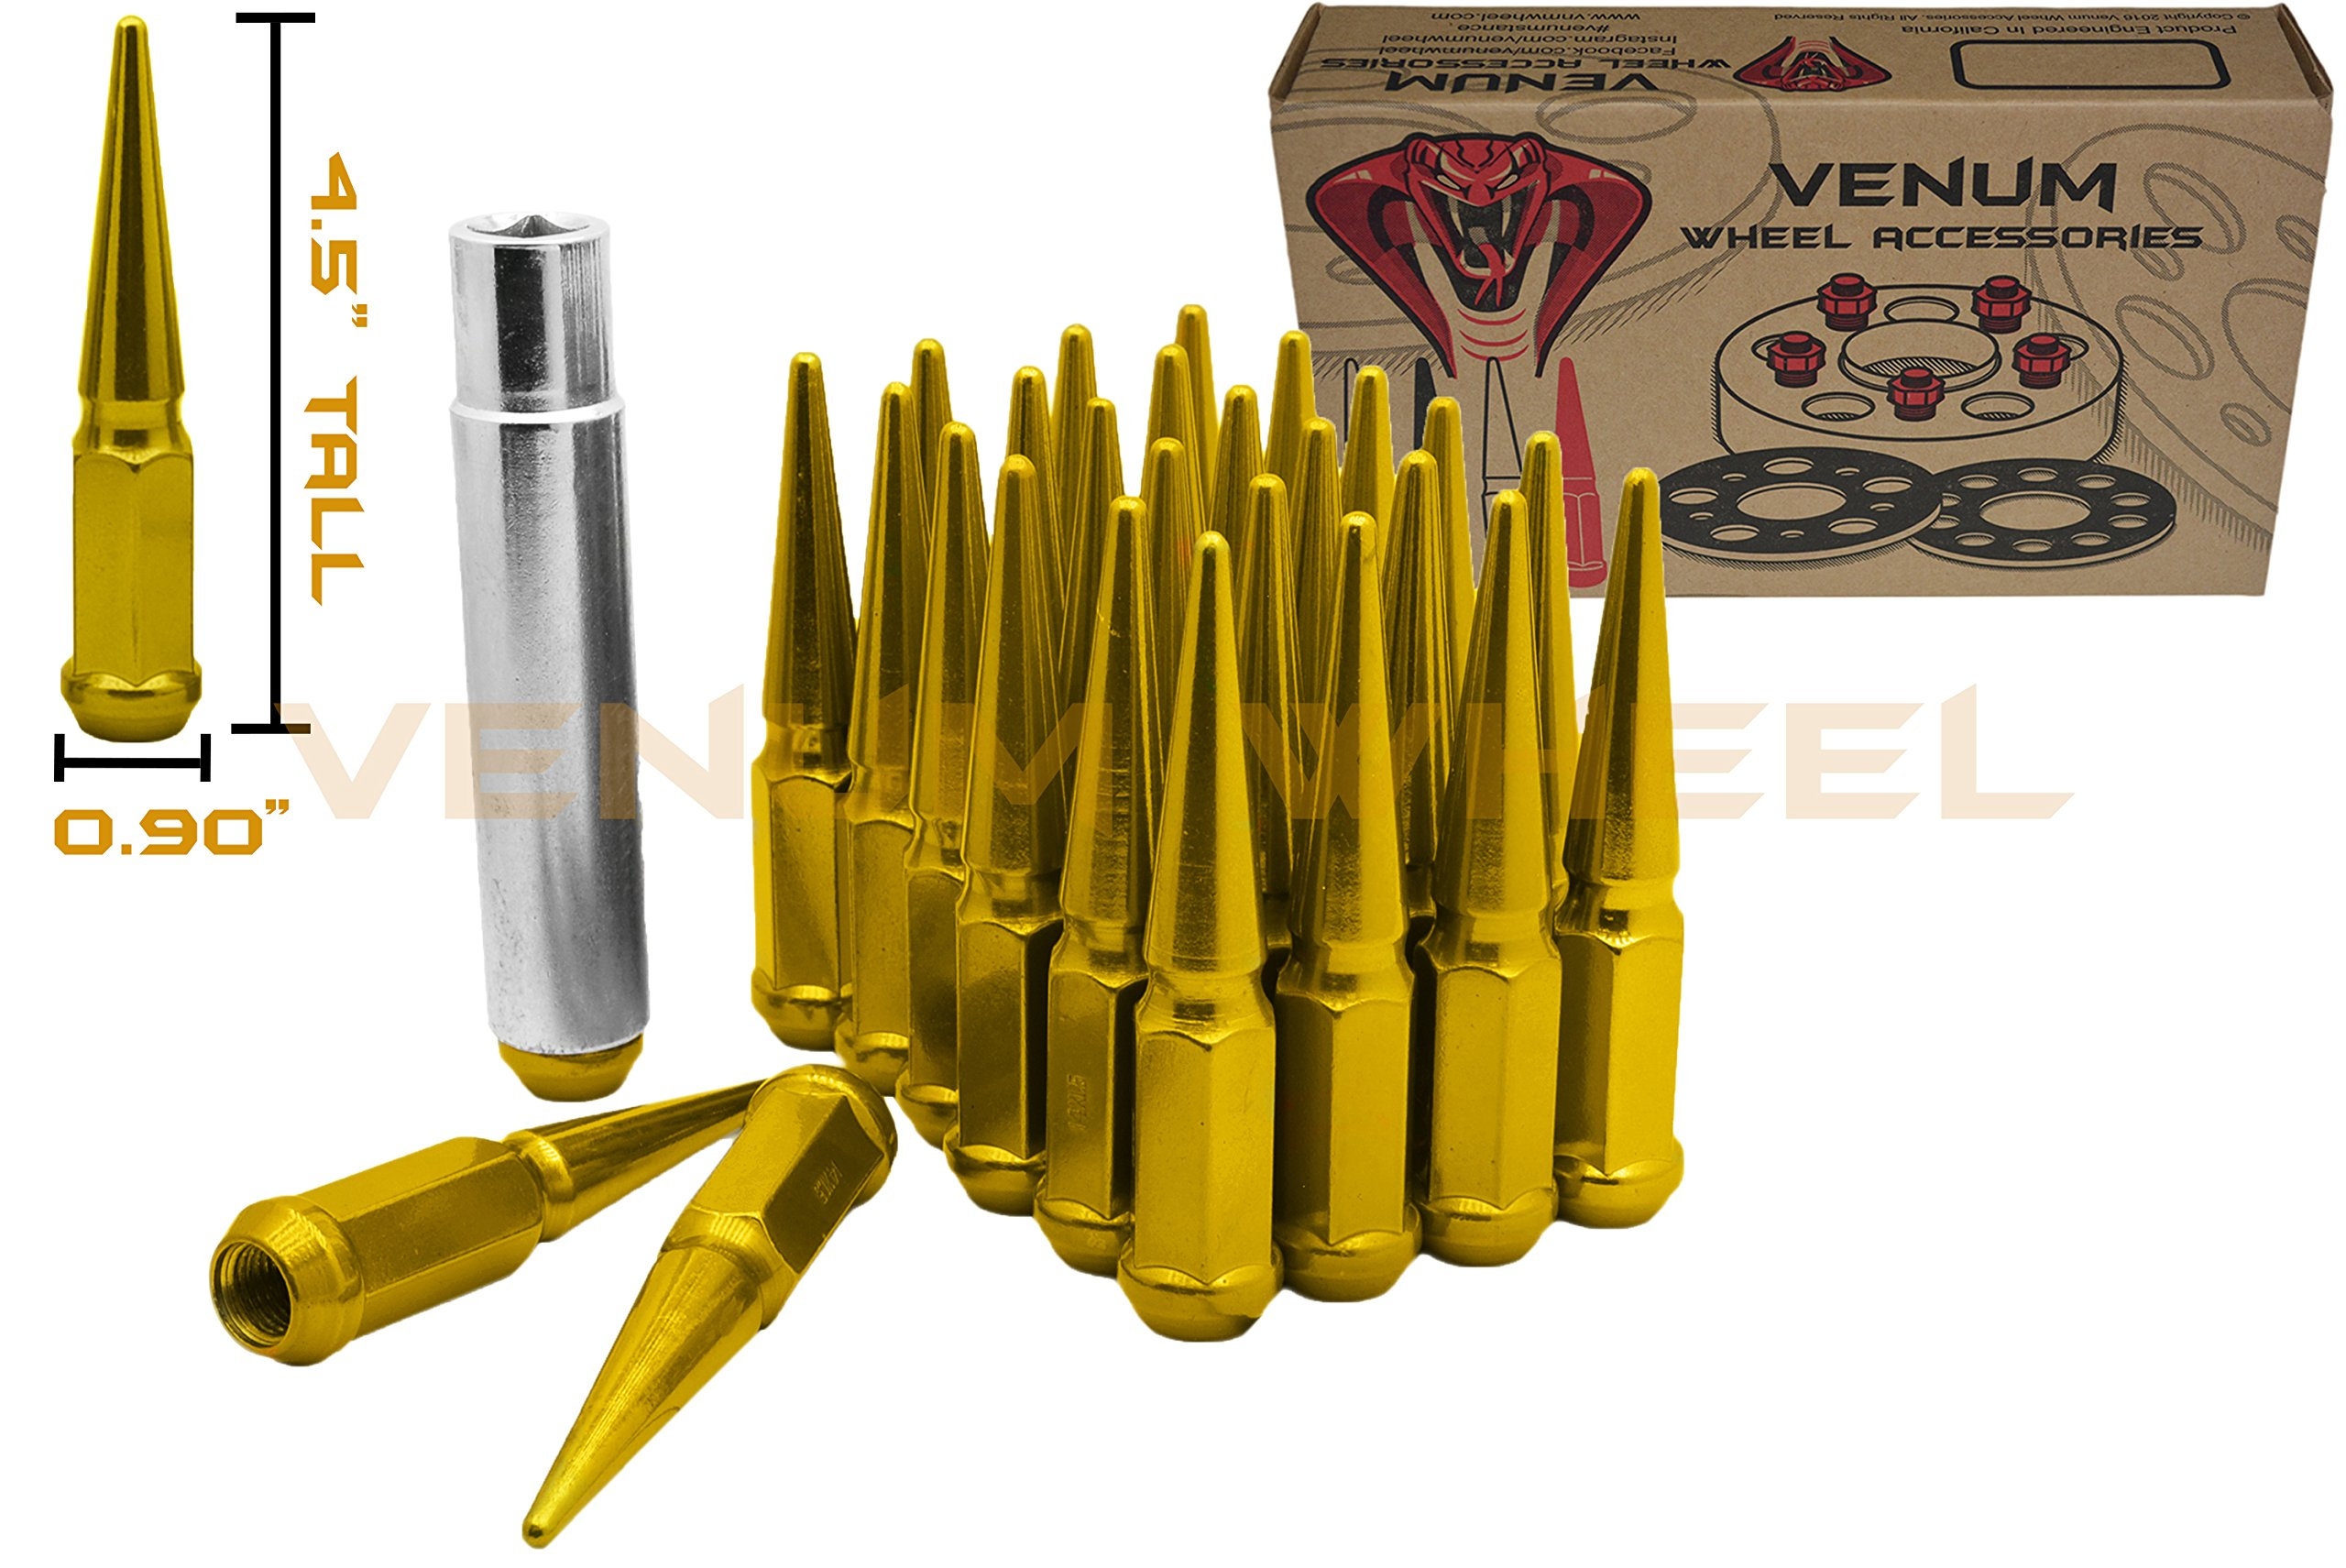 (32) Gold 14x1.5 Spike Security Lug Nuts 4.5'' Tall Socket Key Included | 2003-2018 Ford F250 F350 Heavy Duty Made in USA for Aftermarket Wheels by Venum wheel accessories